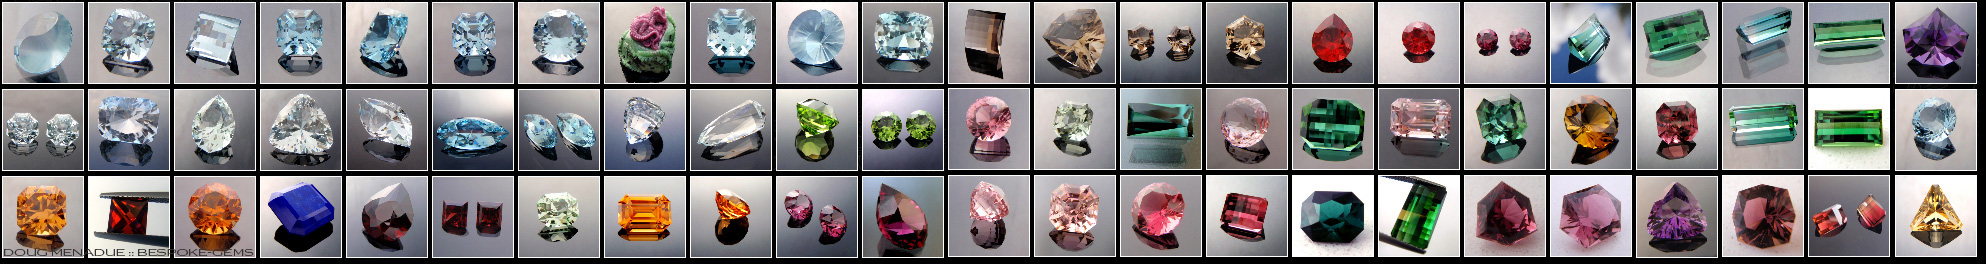 Bespoke Gems - Fine Handcut Designer Gemstones - Precious and Semi Precious Gemstones - Fine Handcut Designer Gemstones - Click To Enter